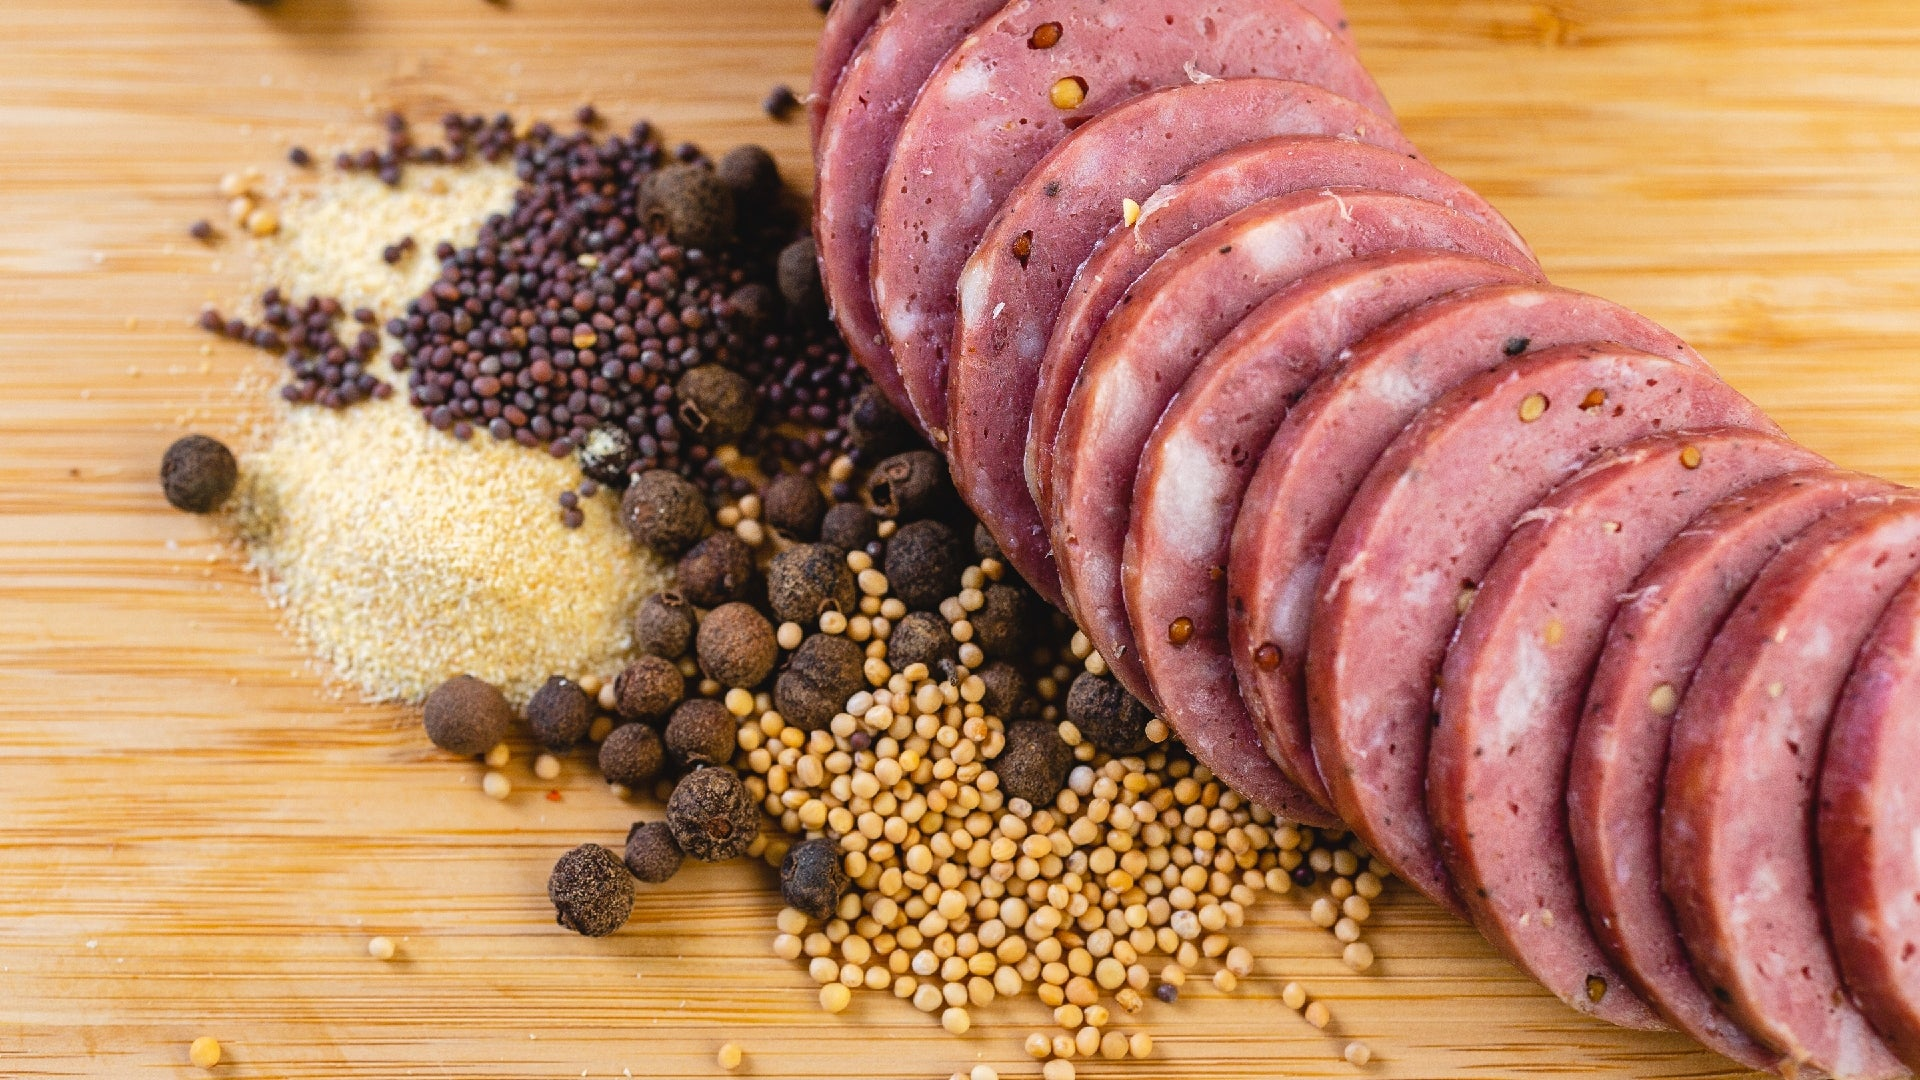 A close up picture of slices of summer sausage on a cutting board with herbs and spices next to them.